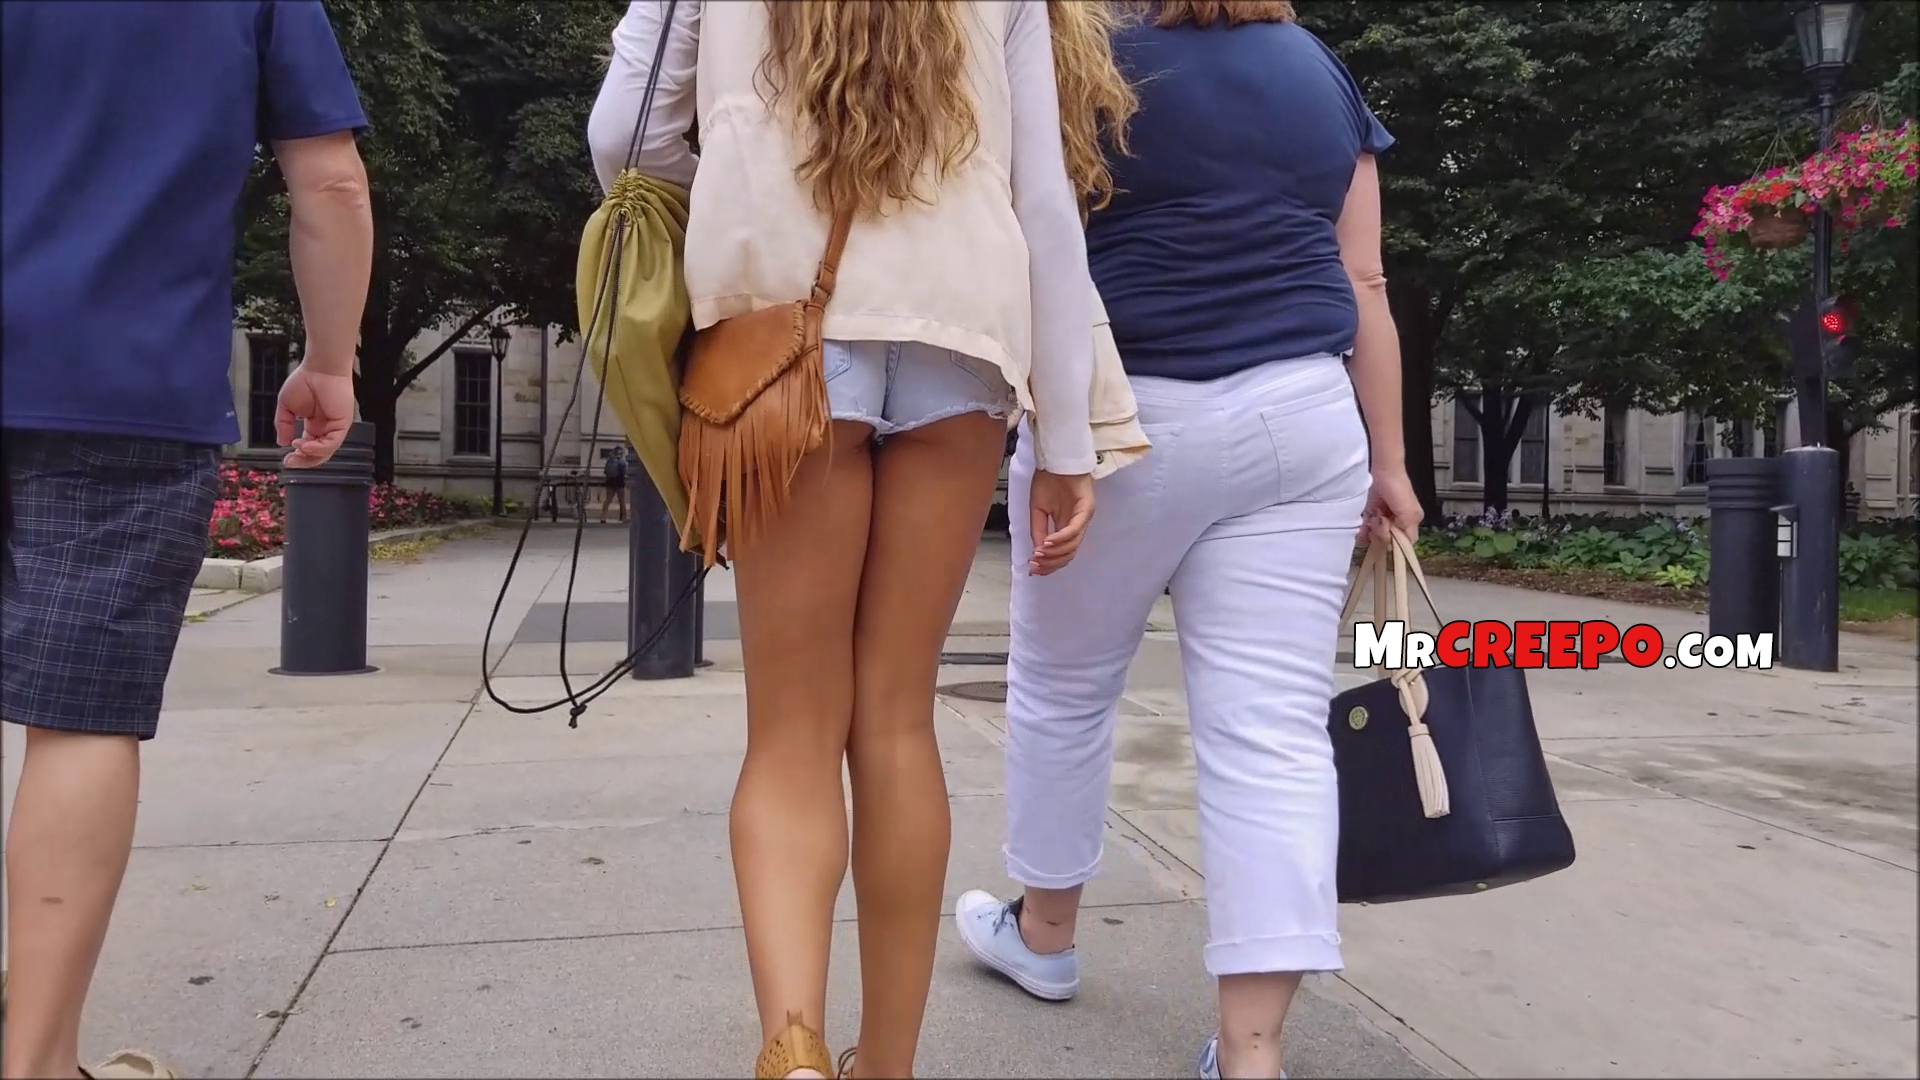 Hot daughter walks with mom and dad